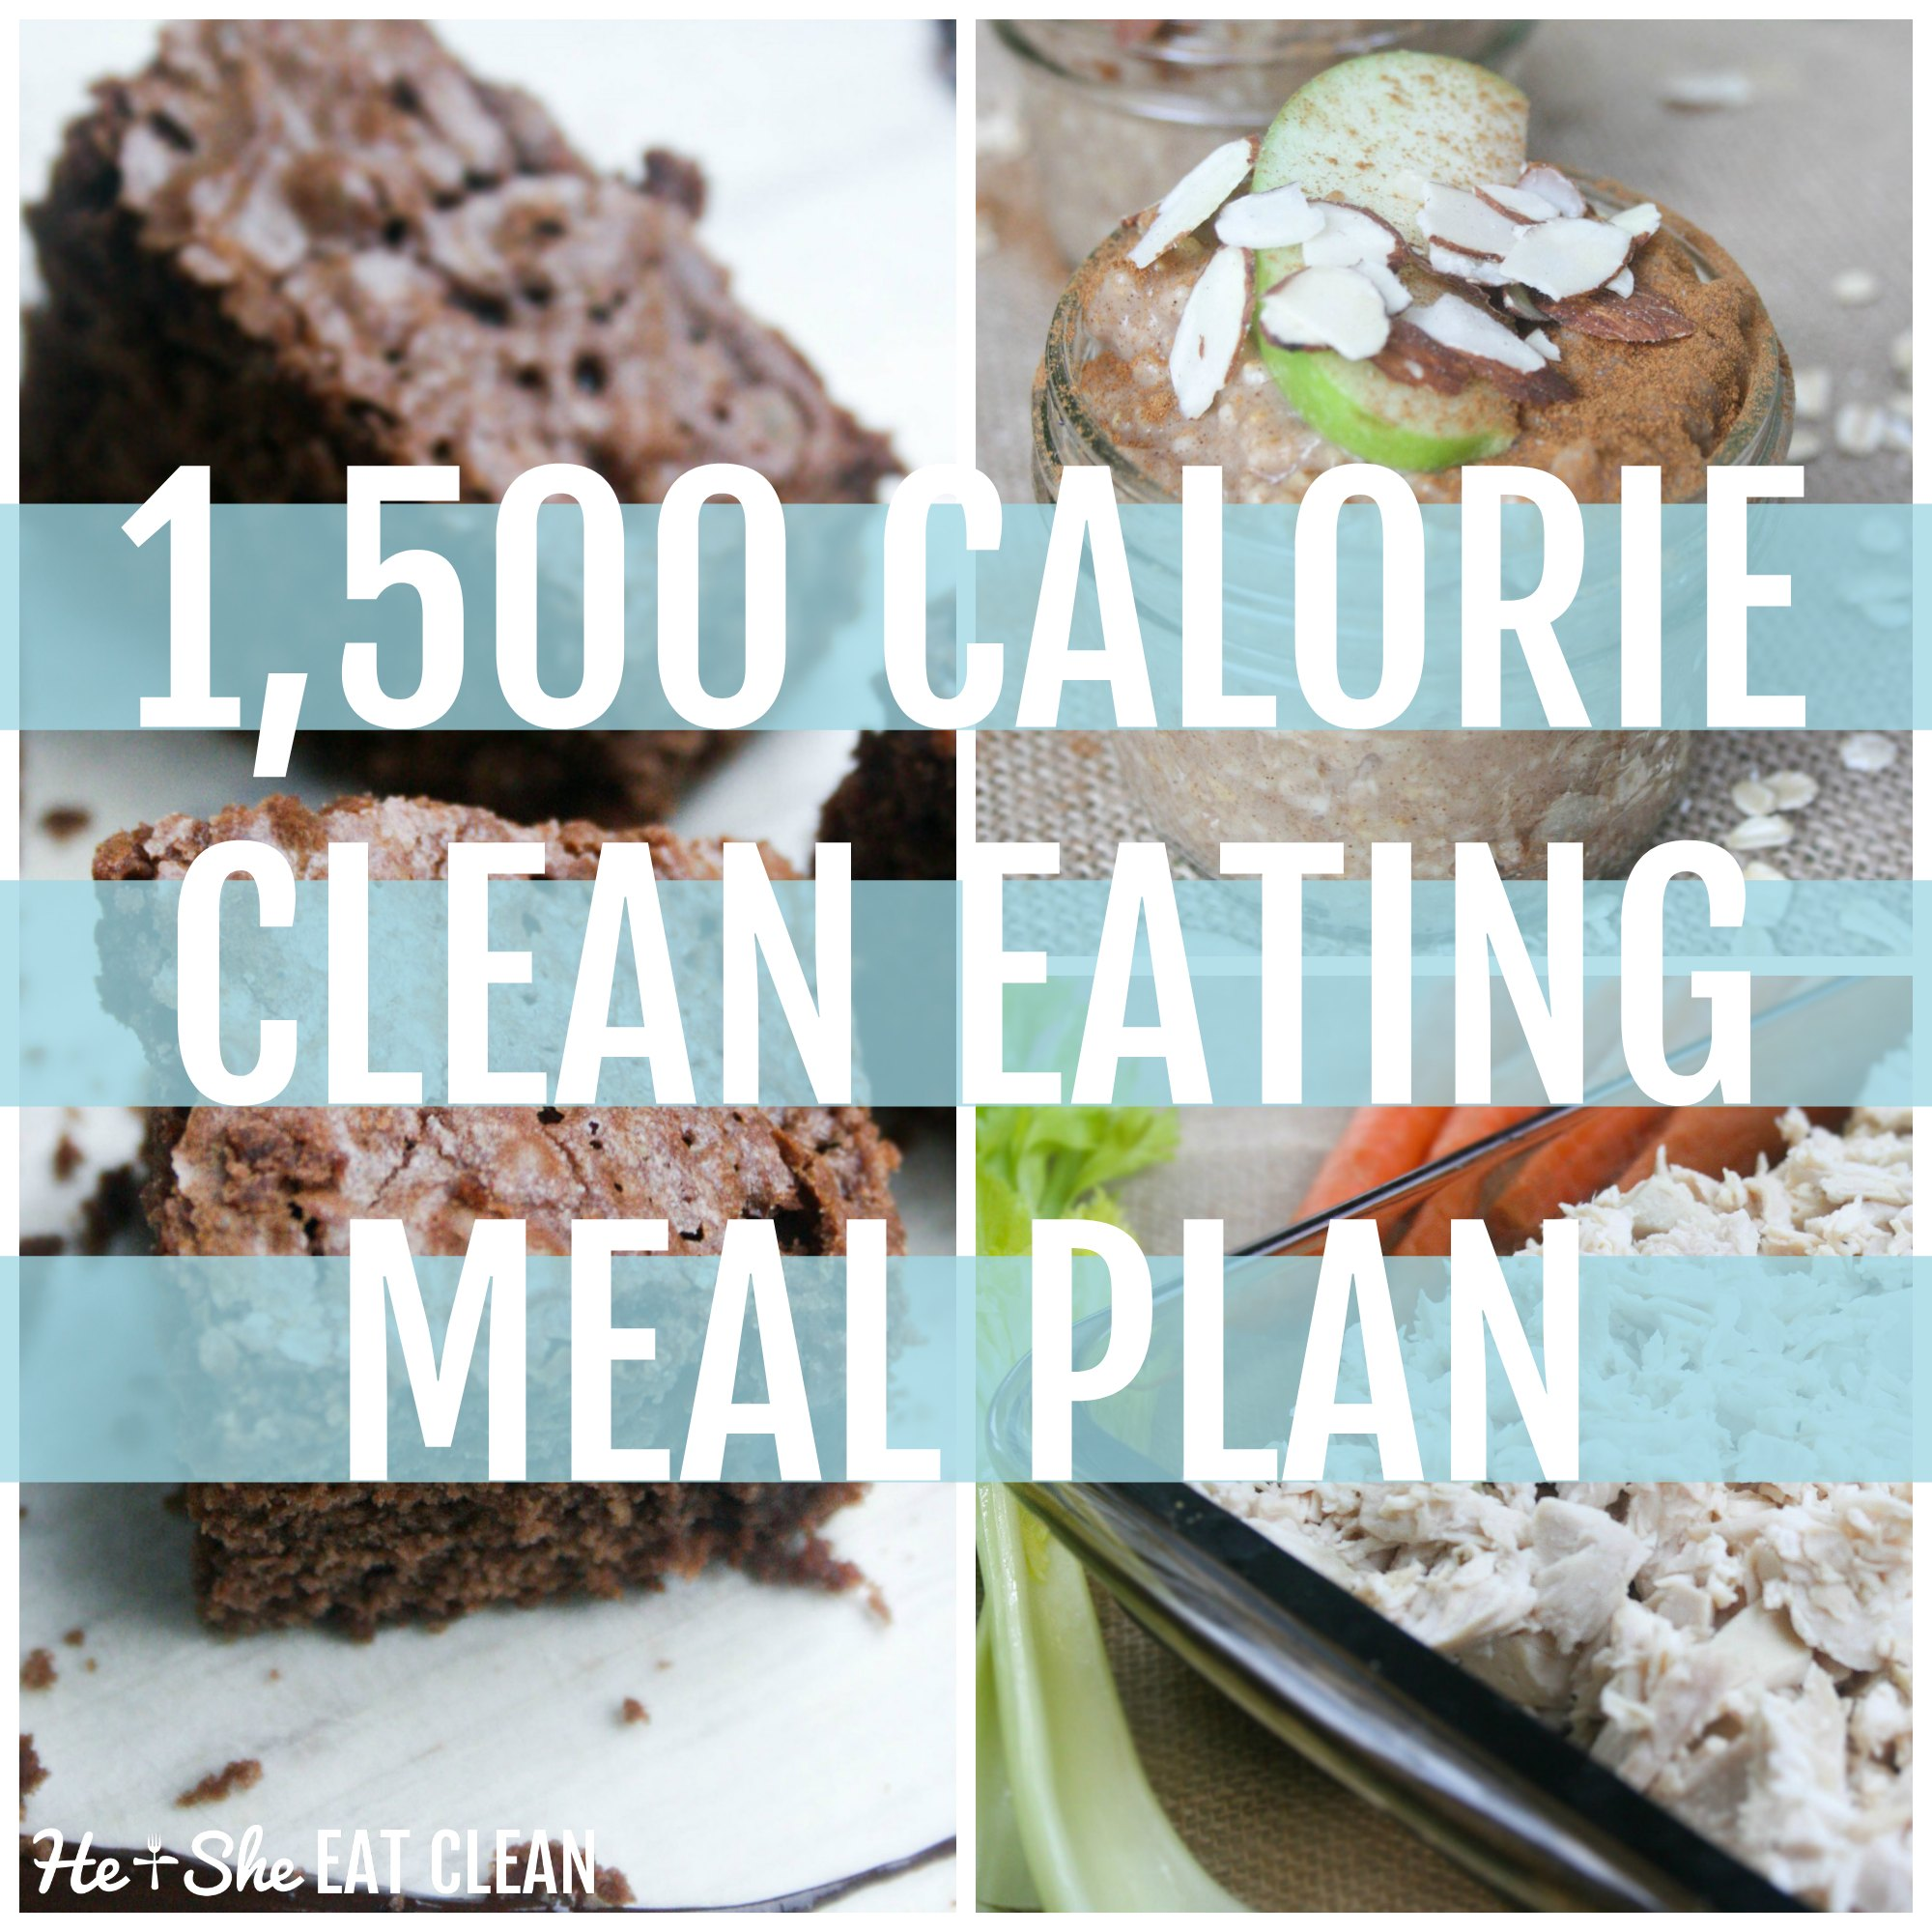 1,500 Calorie Clean Eating MealPlan